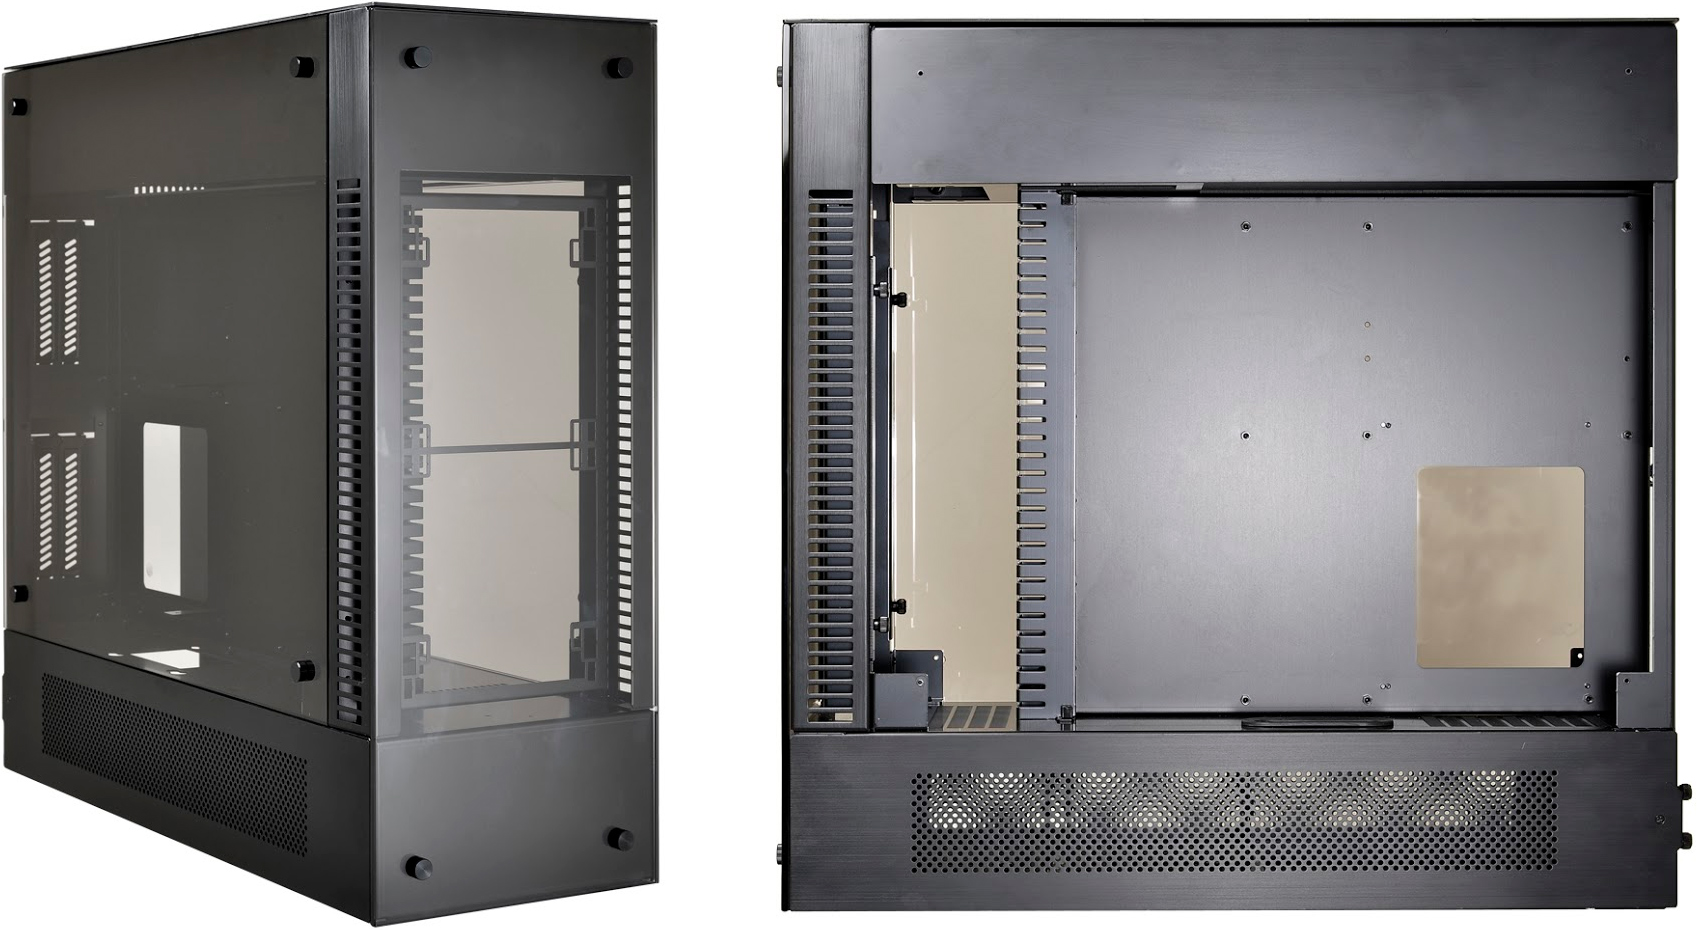 Lian Li Launches PC-O12 Mid-Tower: Three Chambers, E-ATX, LCS-Focused